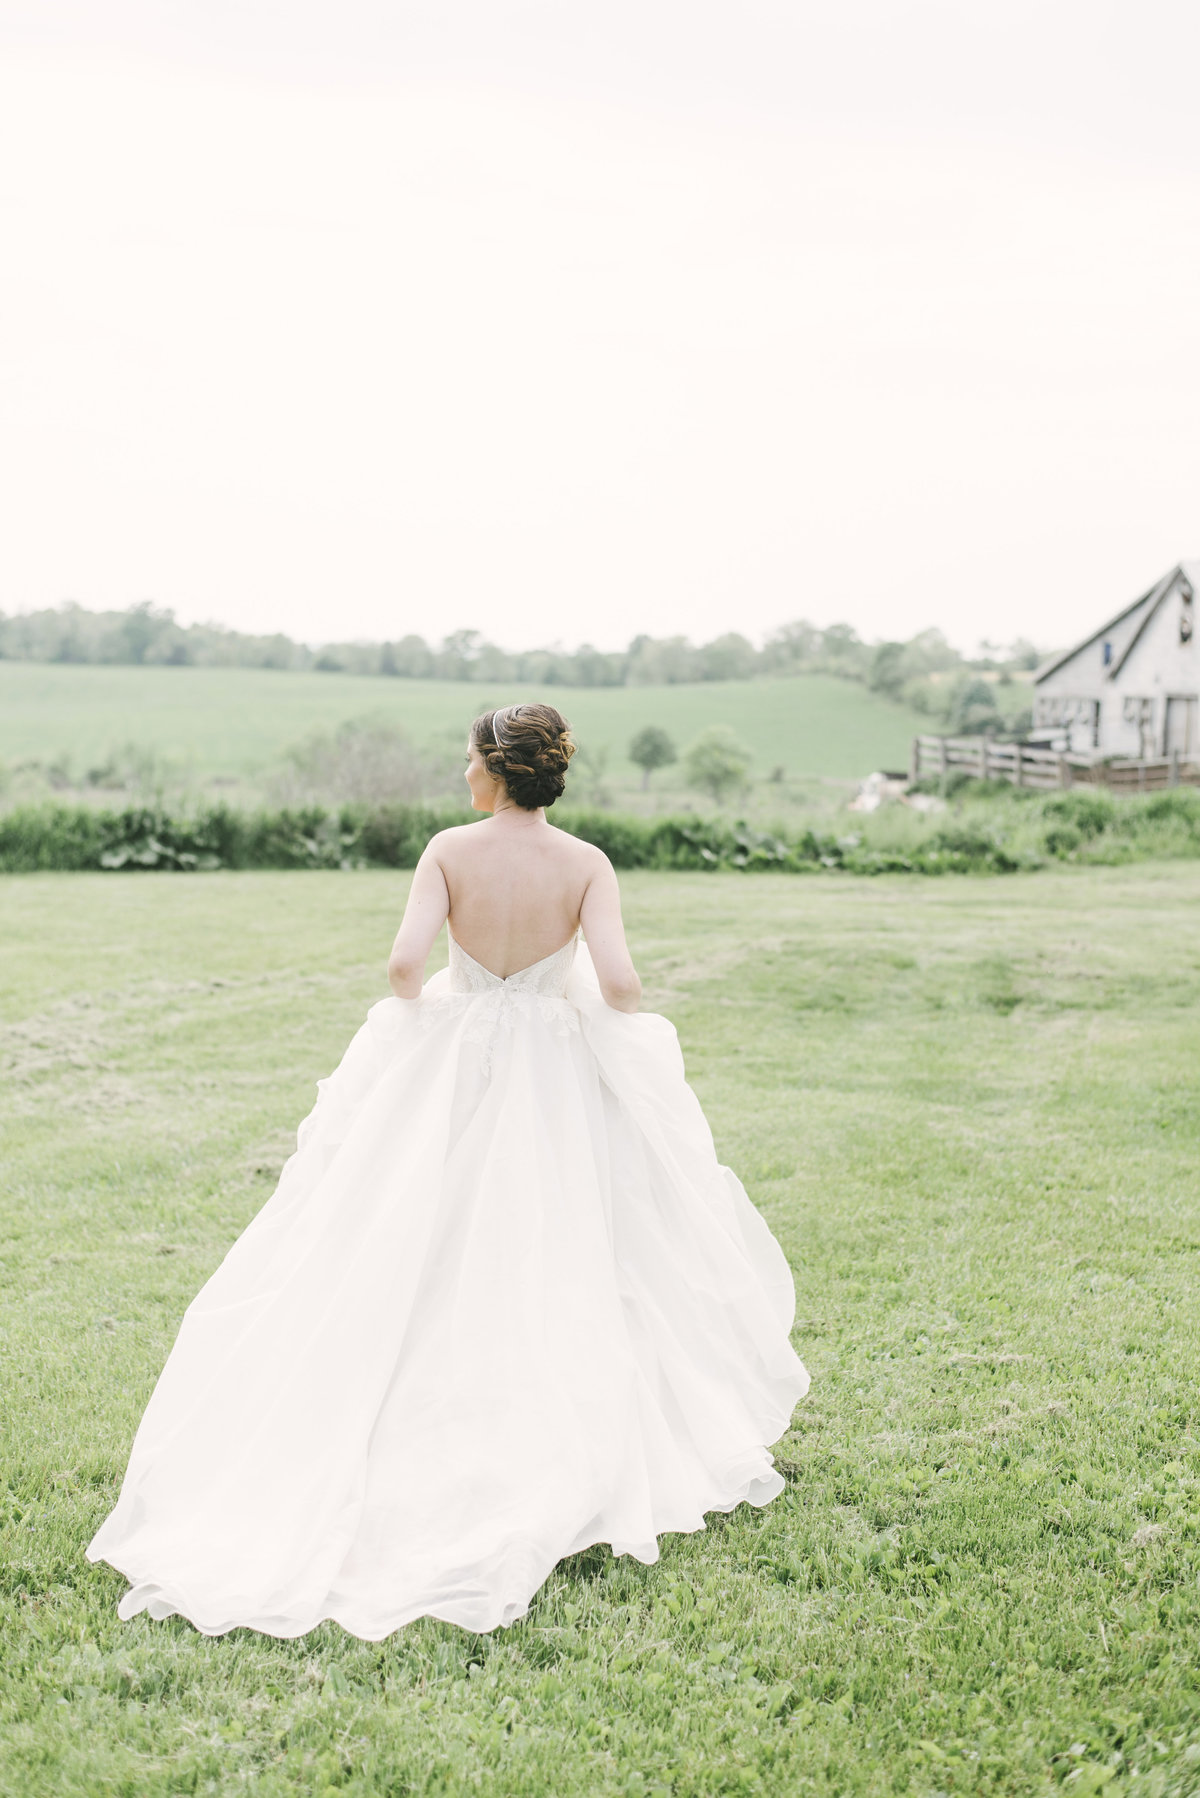 Monica-Relyea-Events-Alicia-King-Photography-Globe-Hill-Ronnybrook-Farm-Hudson-Valley-wedding-shoot-inspiration22